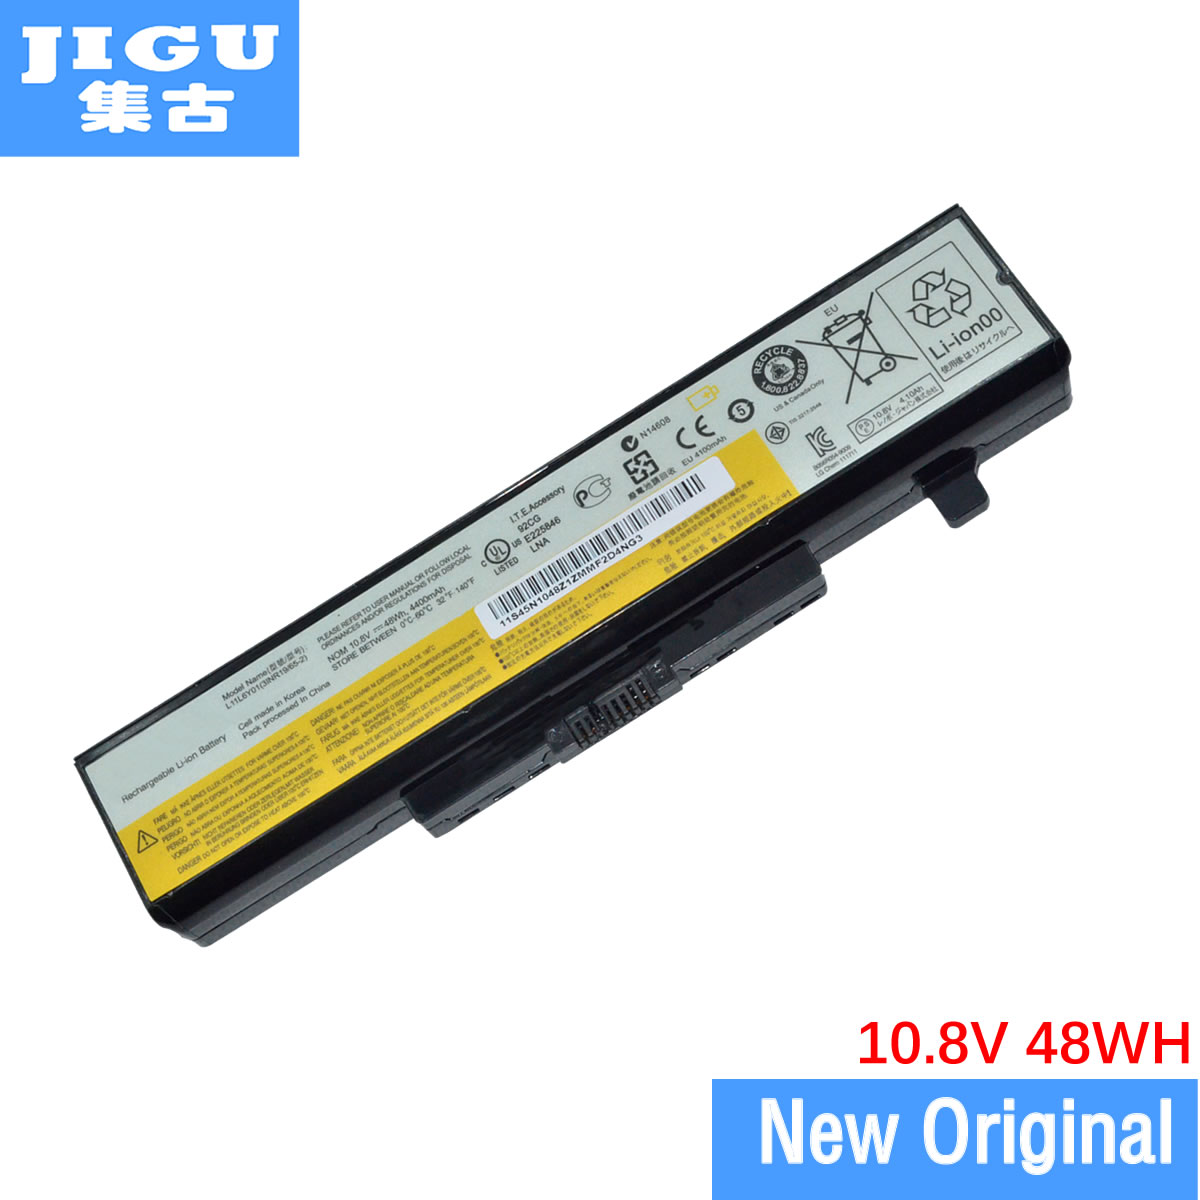 JIGU Original laptop Battery For <font><b>Lenovo</b></font> <font><b>V580</b></font> V580C Y480 Y480P Y485 Y580 Y580A Z380 Z480 Z485 Z580 Z585 V480S V480u image